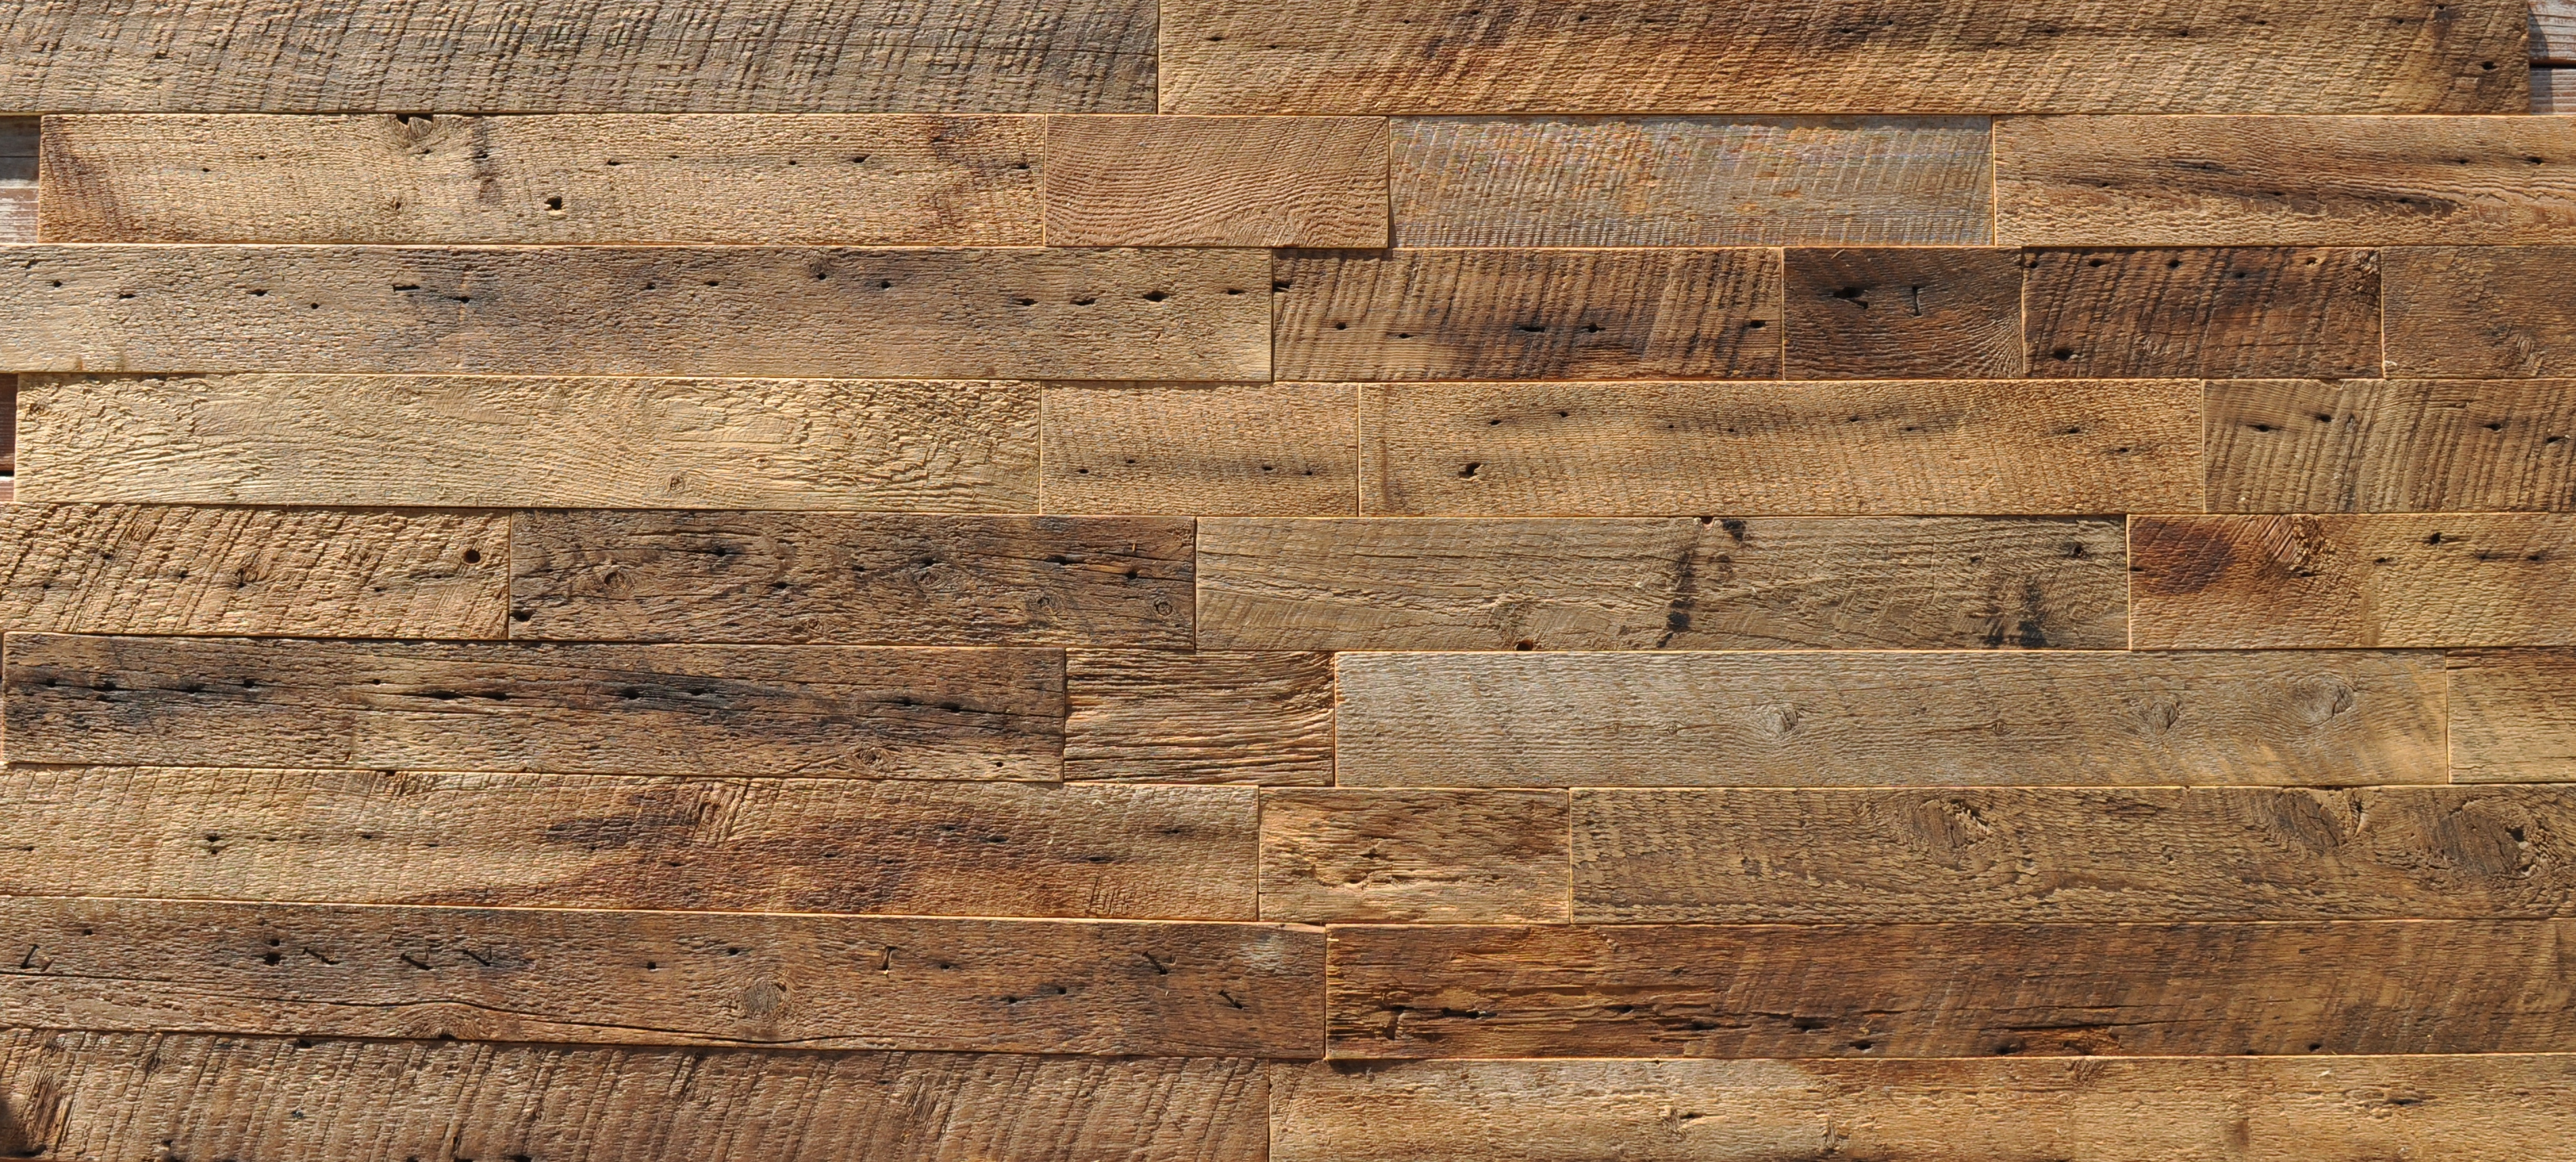 Diy reclaimed wood accent wall brown waxed and sealed 3 5 Reclaimed woods